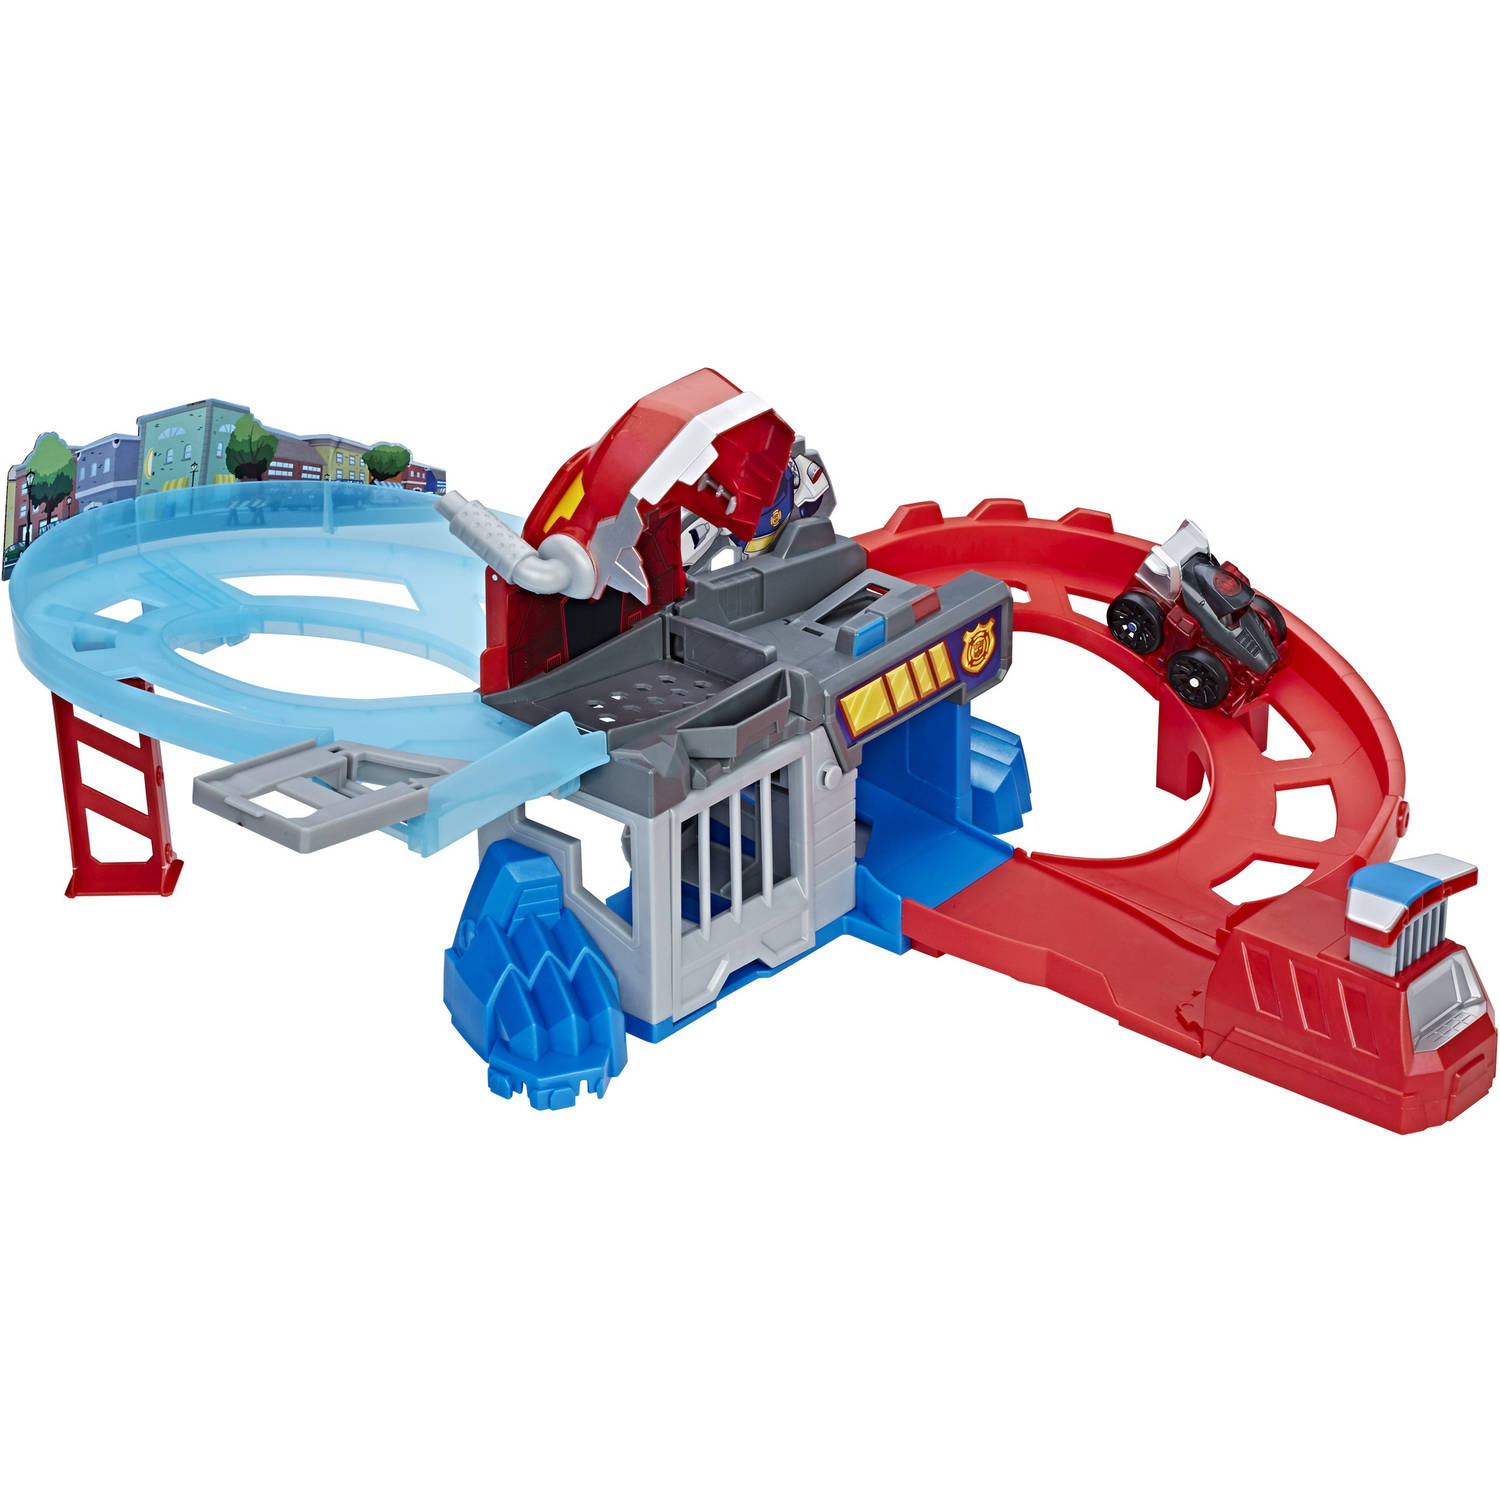 Playskool Heroes Transformers Rescue Bots Flip Racers Chomp and Chase Raceway by Hasbro